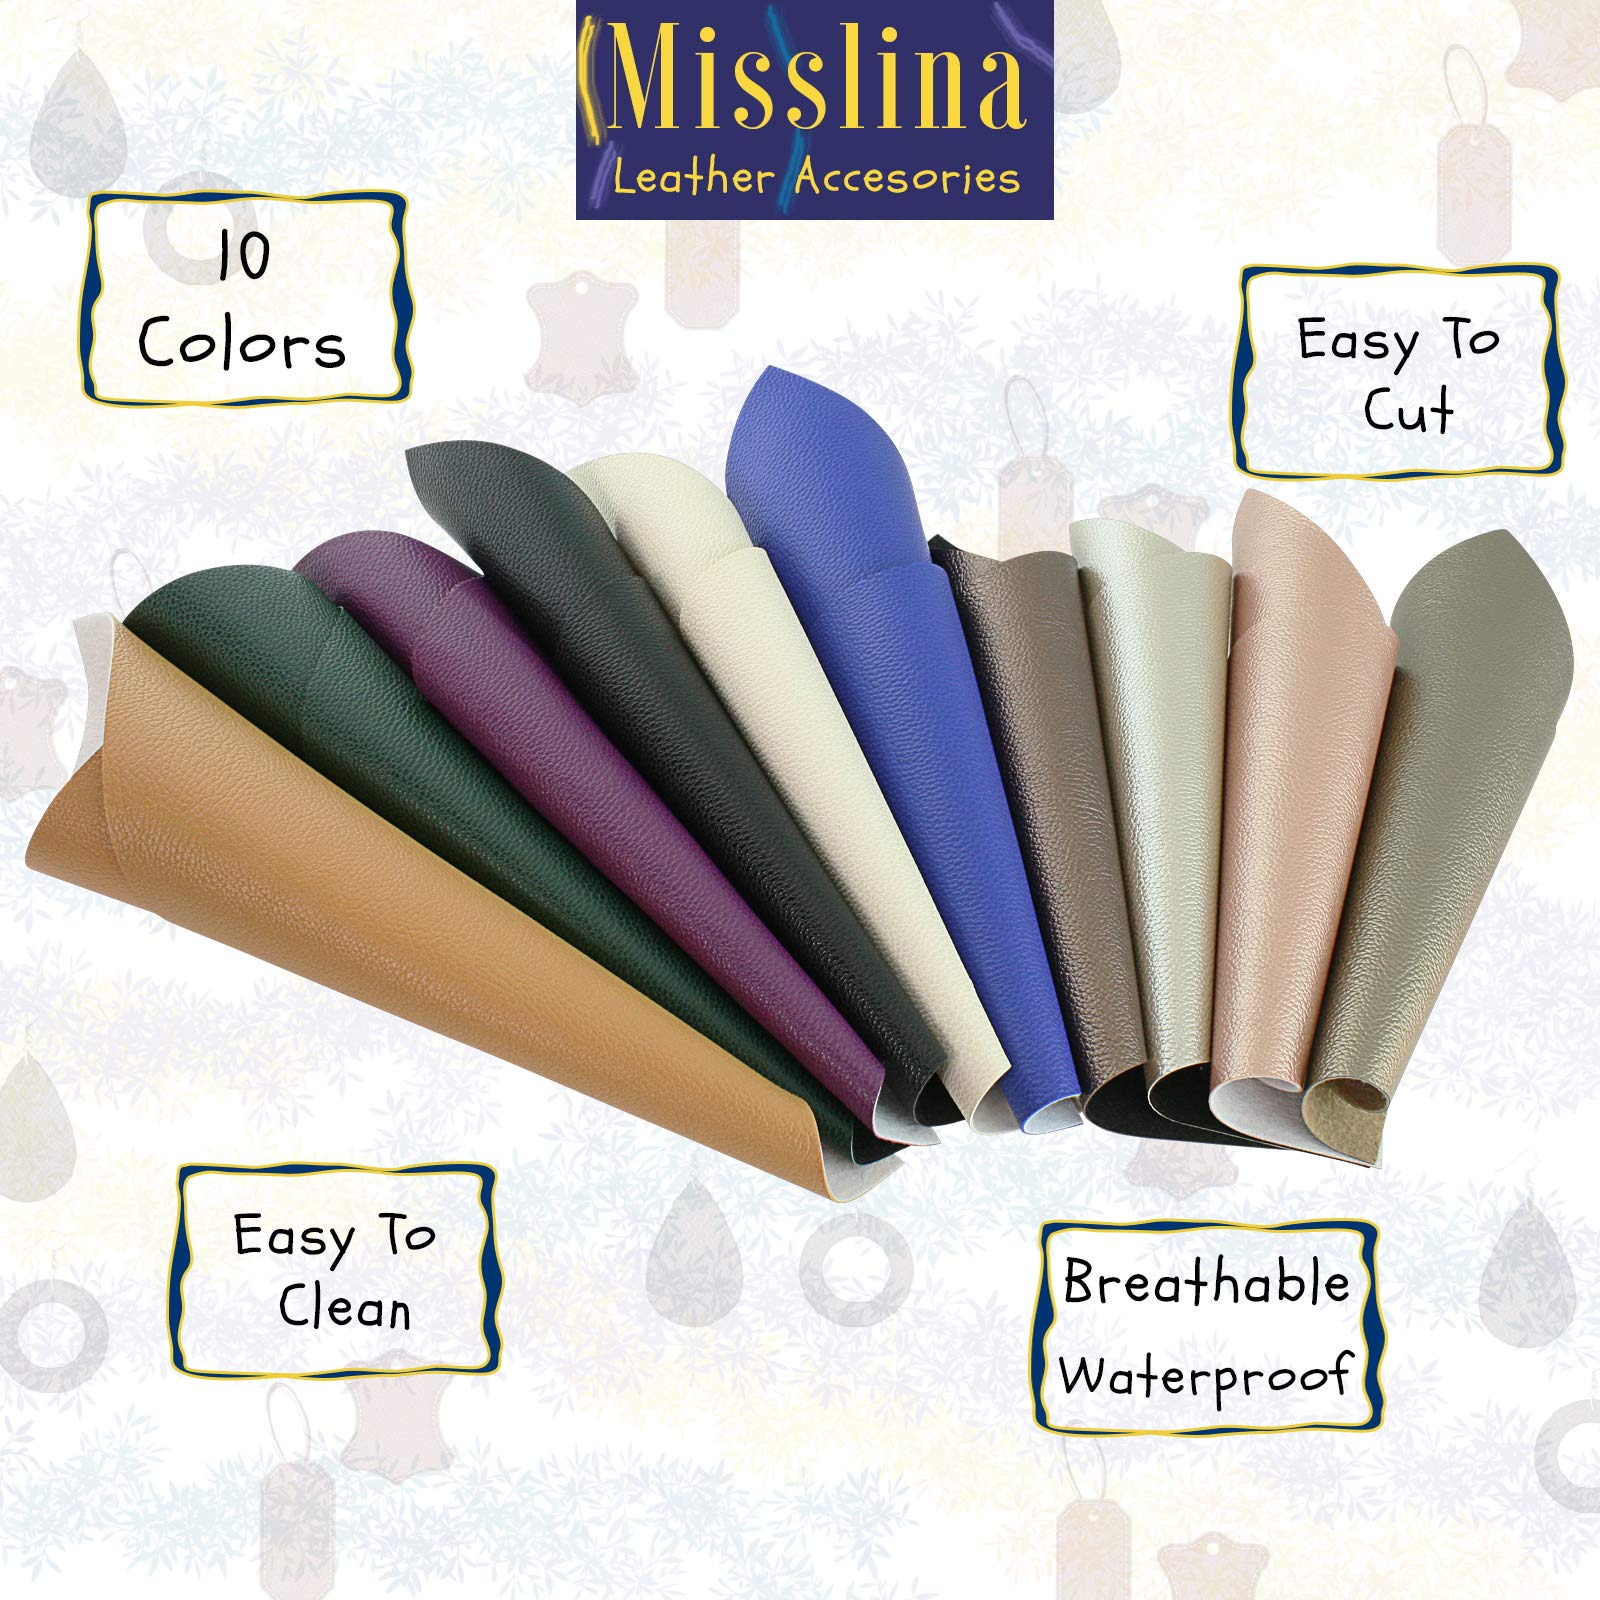 Faux Leather Sheets for Leathercraft Accesories with Cotton Fabric Back- 8'' x 13''(20 x 34 cm) Pack of 10 Faux Leather for Earring Making, Ribbon Bowls Crafts Making- 10 Colours of Faux Leather Sheets by MissLina Faux Leather Accesories (Image #3)